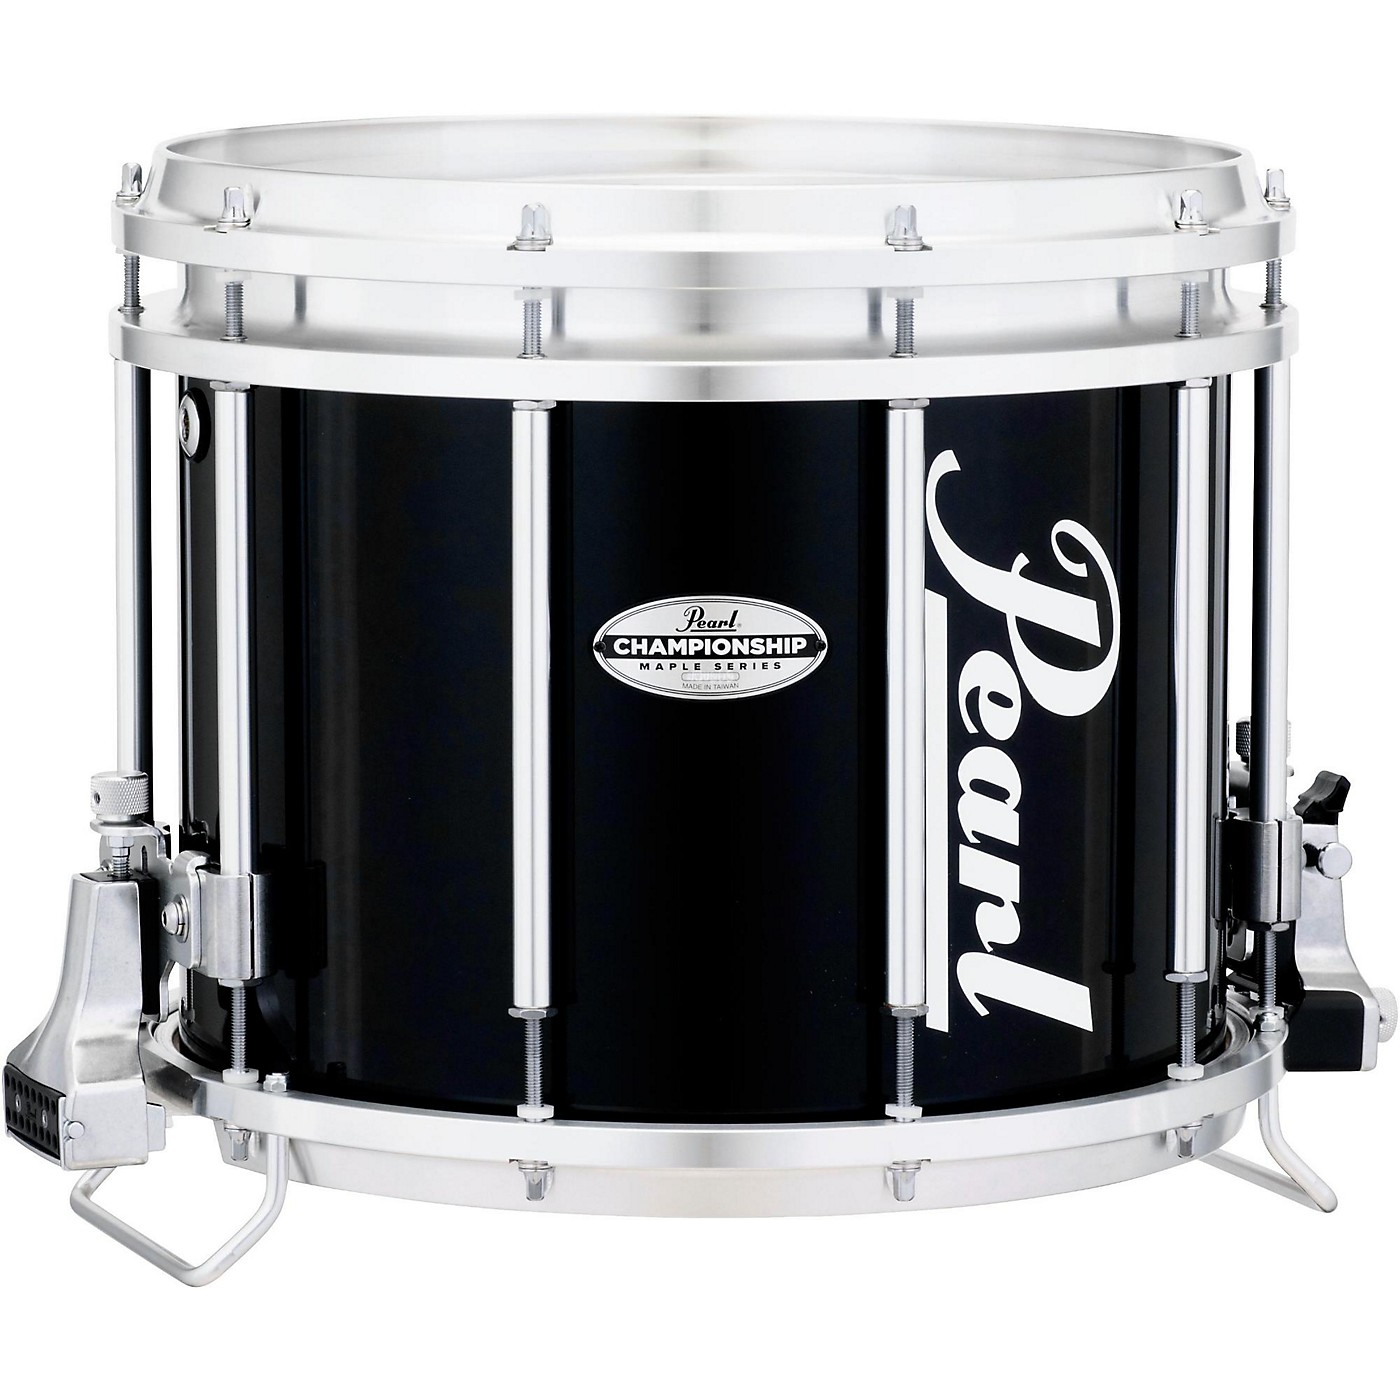 Pearl Championship Maple FFX Marching Snare Drum thumbnail